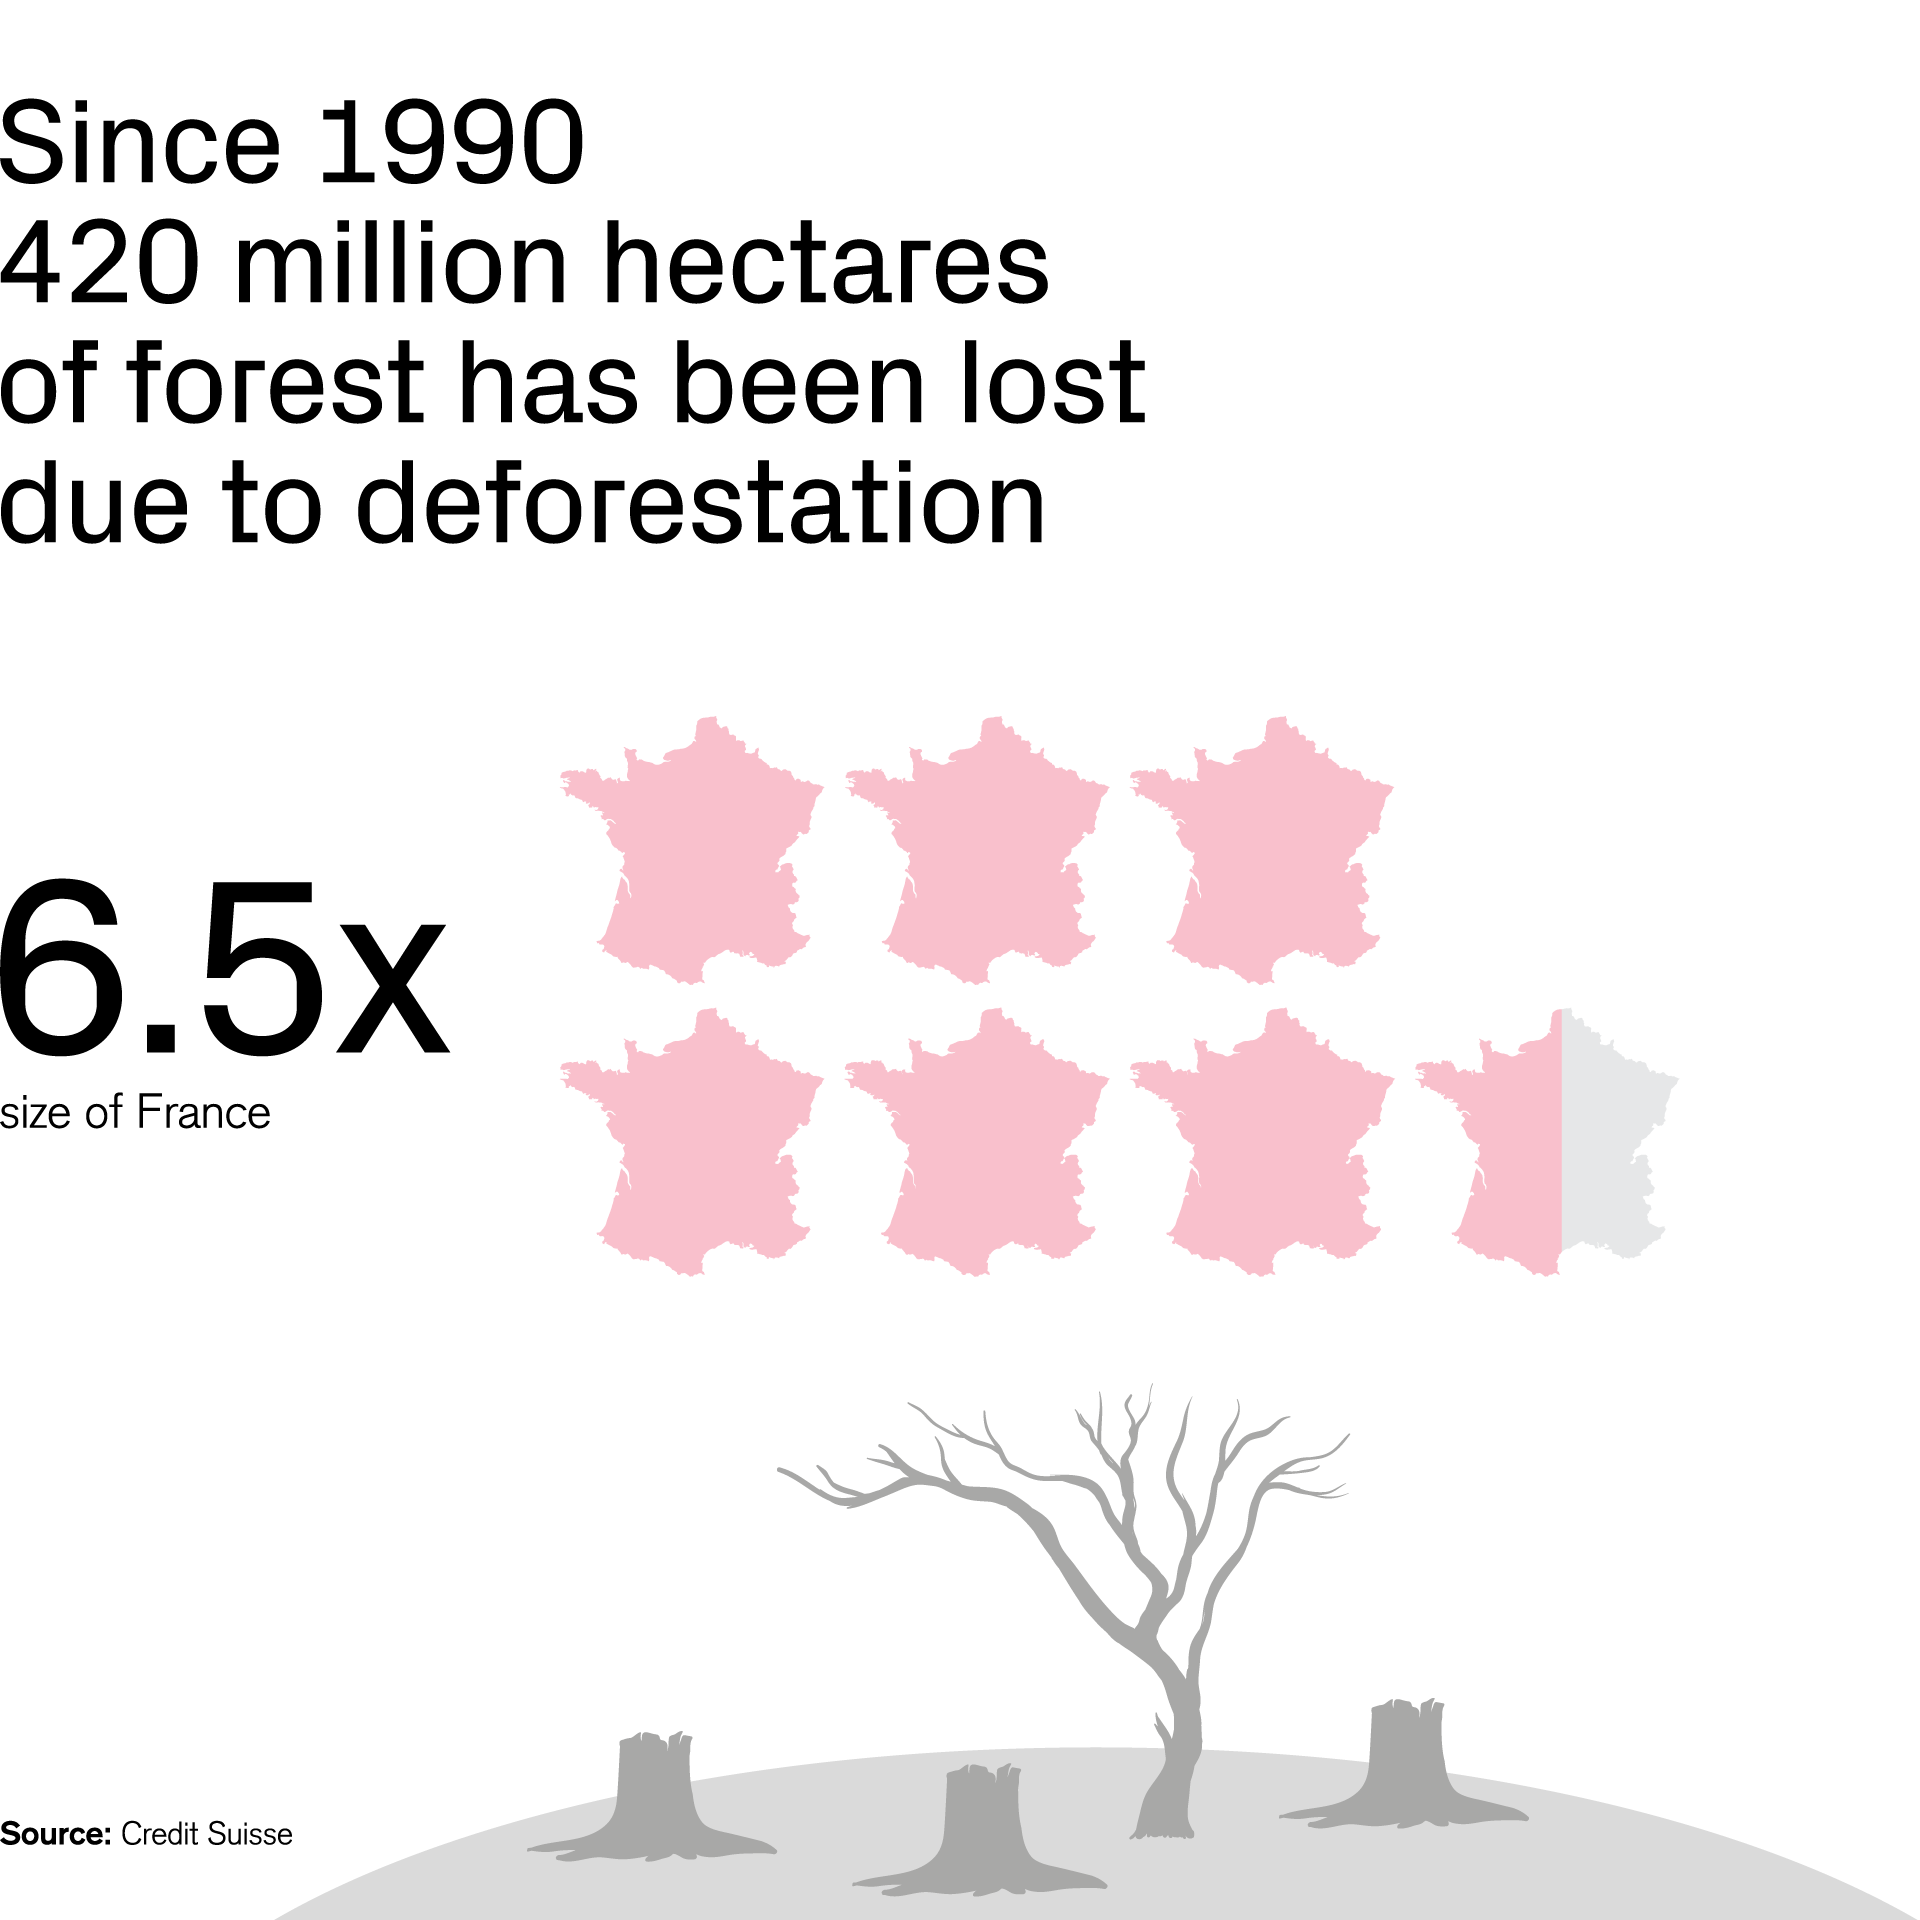 Only since 1990 420 million hectares of forest has been lost due to deforestation